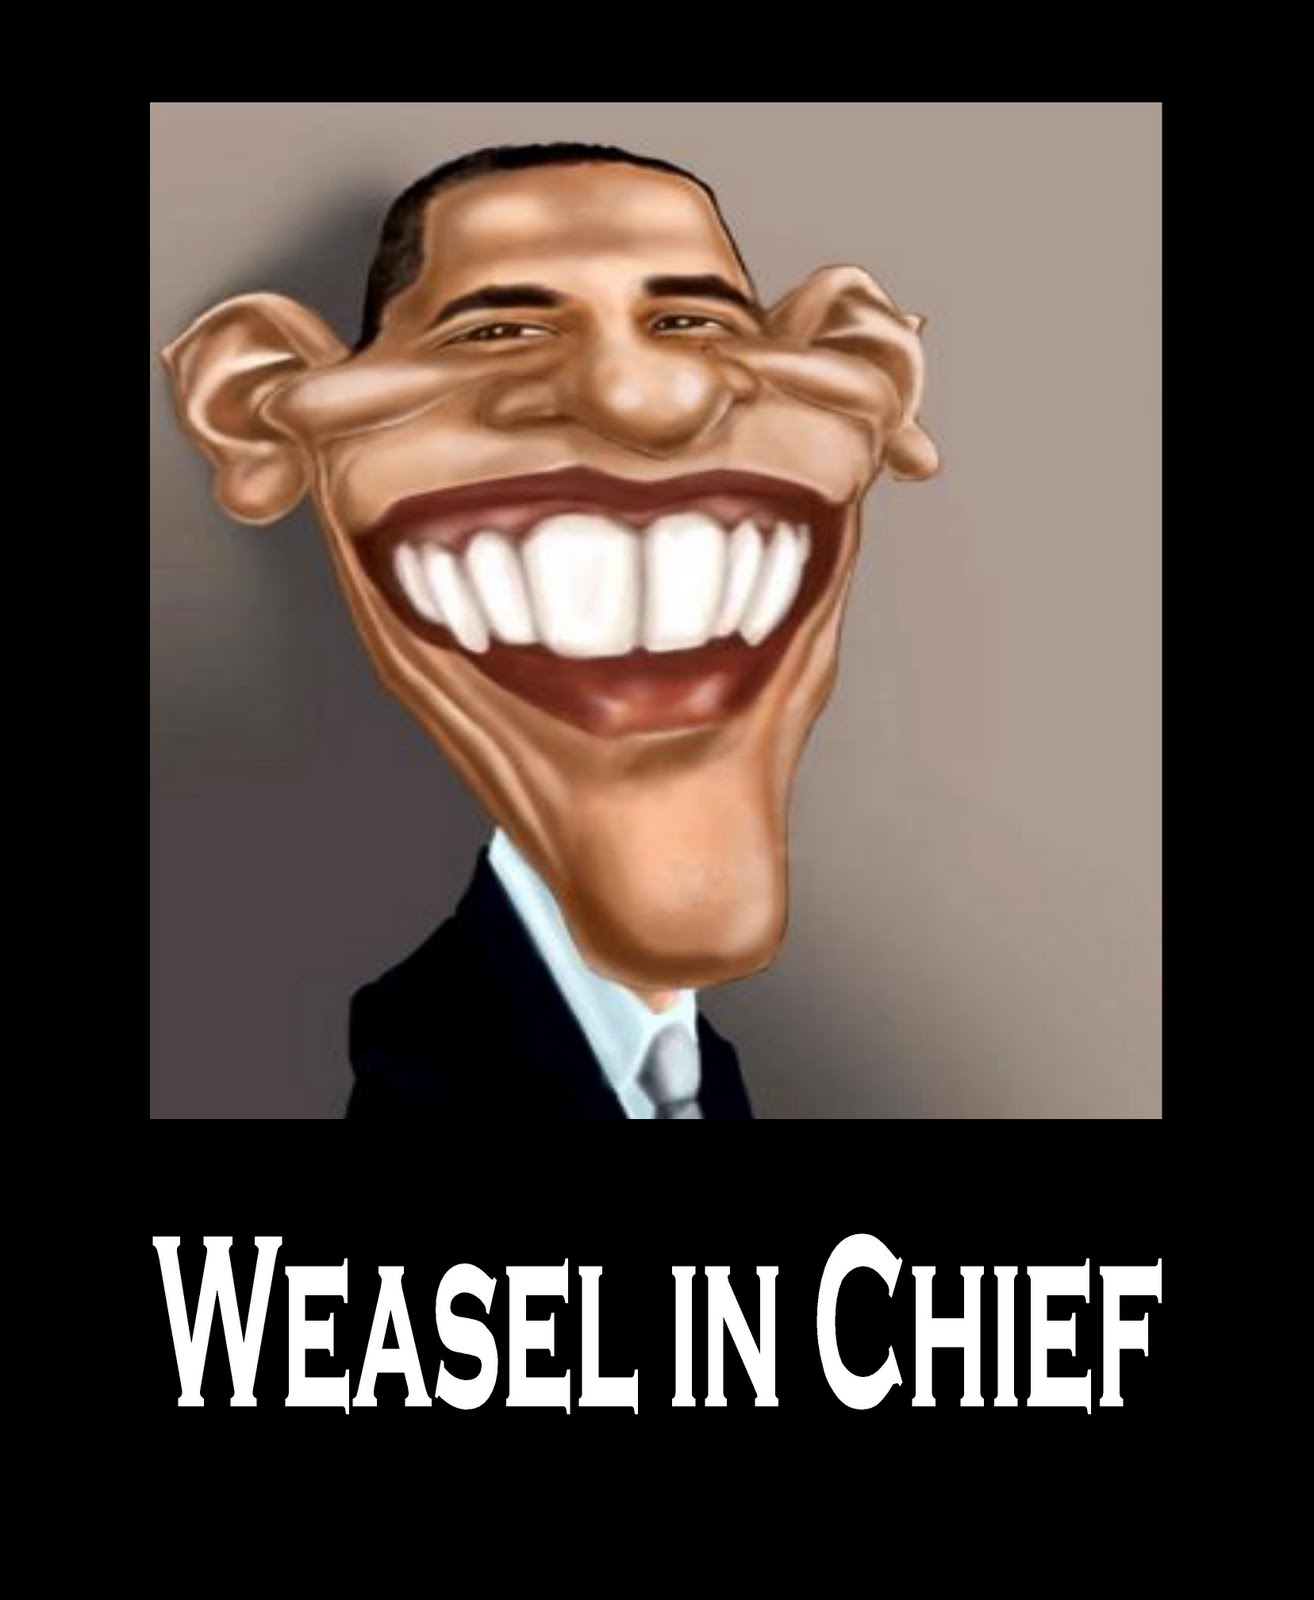 weasel in chief